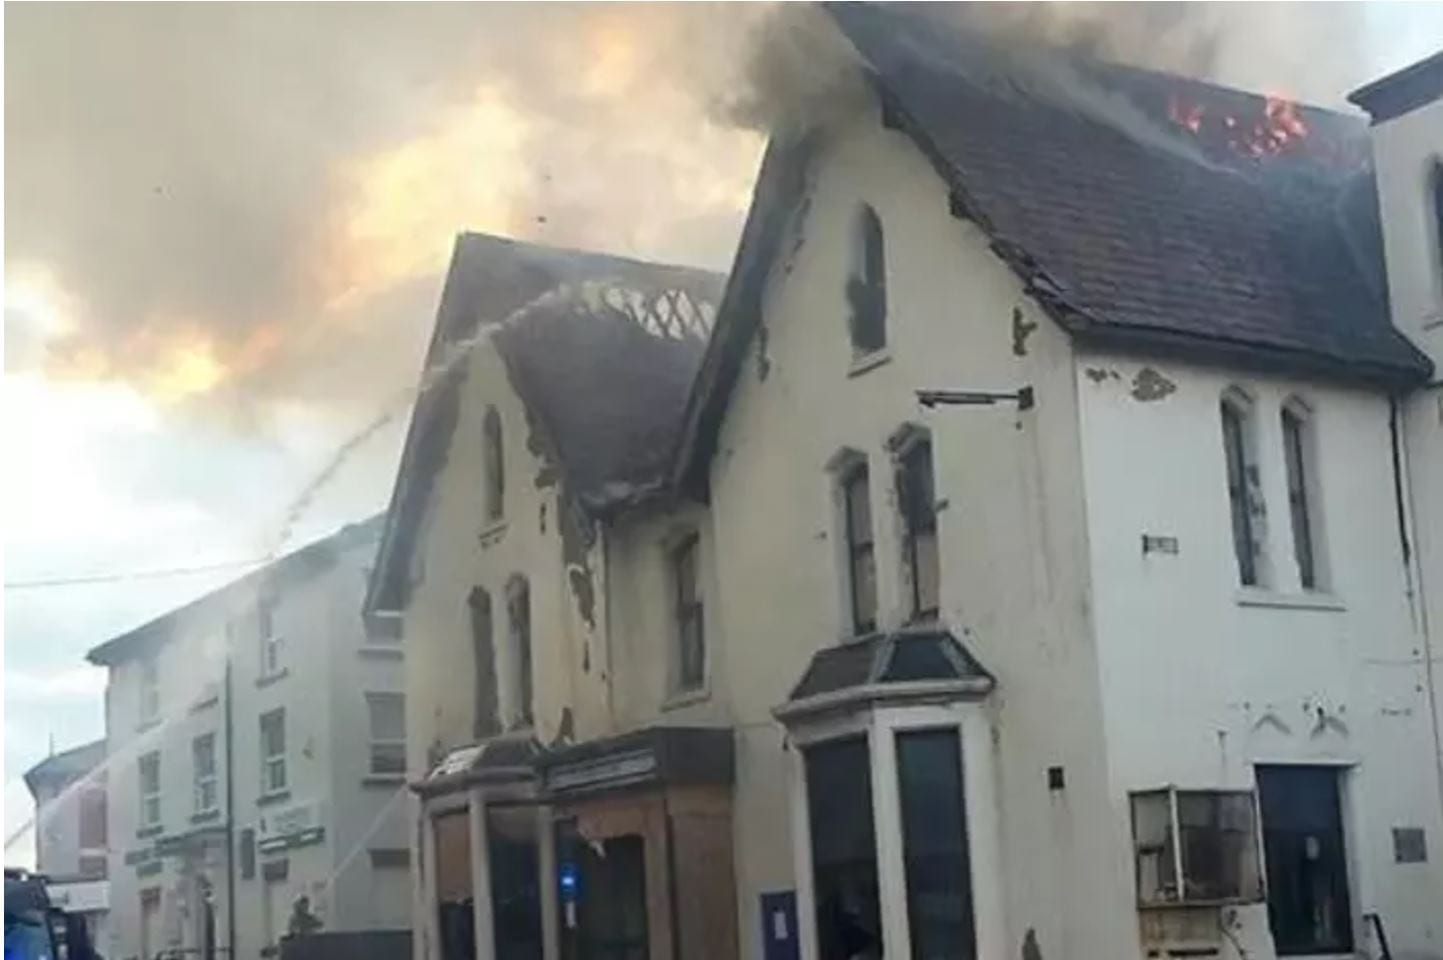 Fire at the Comrades Club in Blackpool - photo Blackpool Gazette